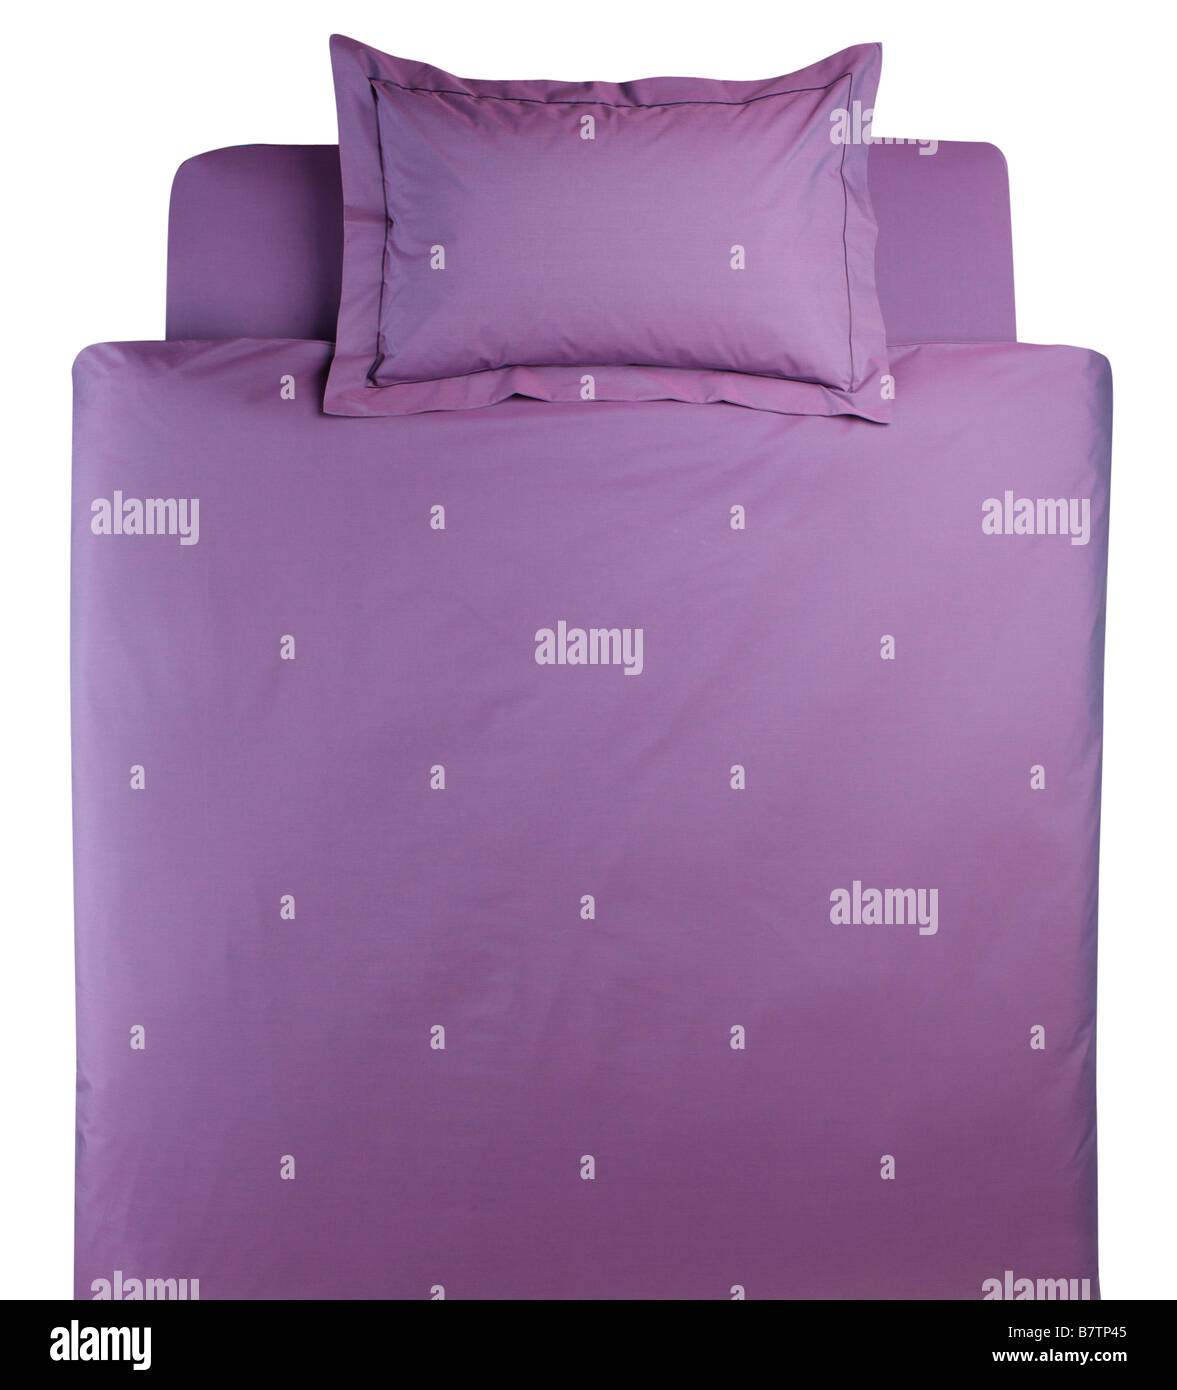 Bed linen - Stock Image